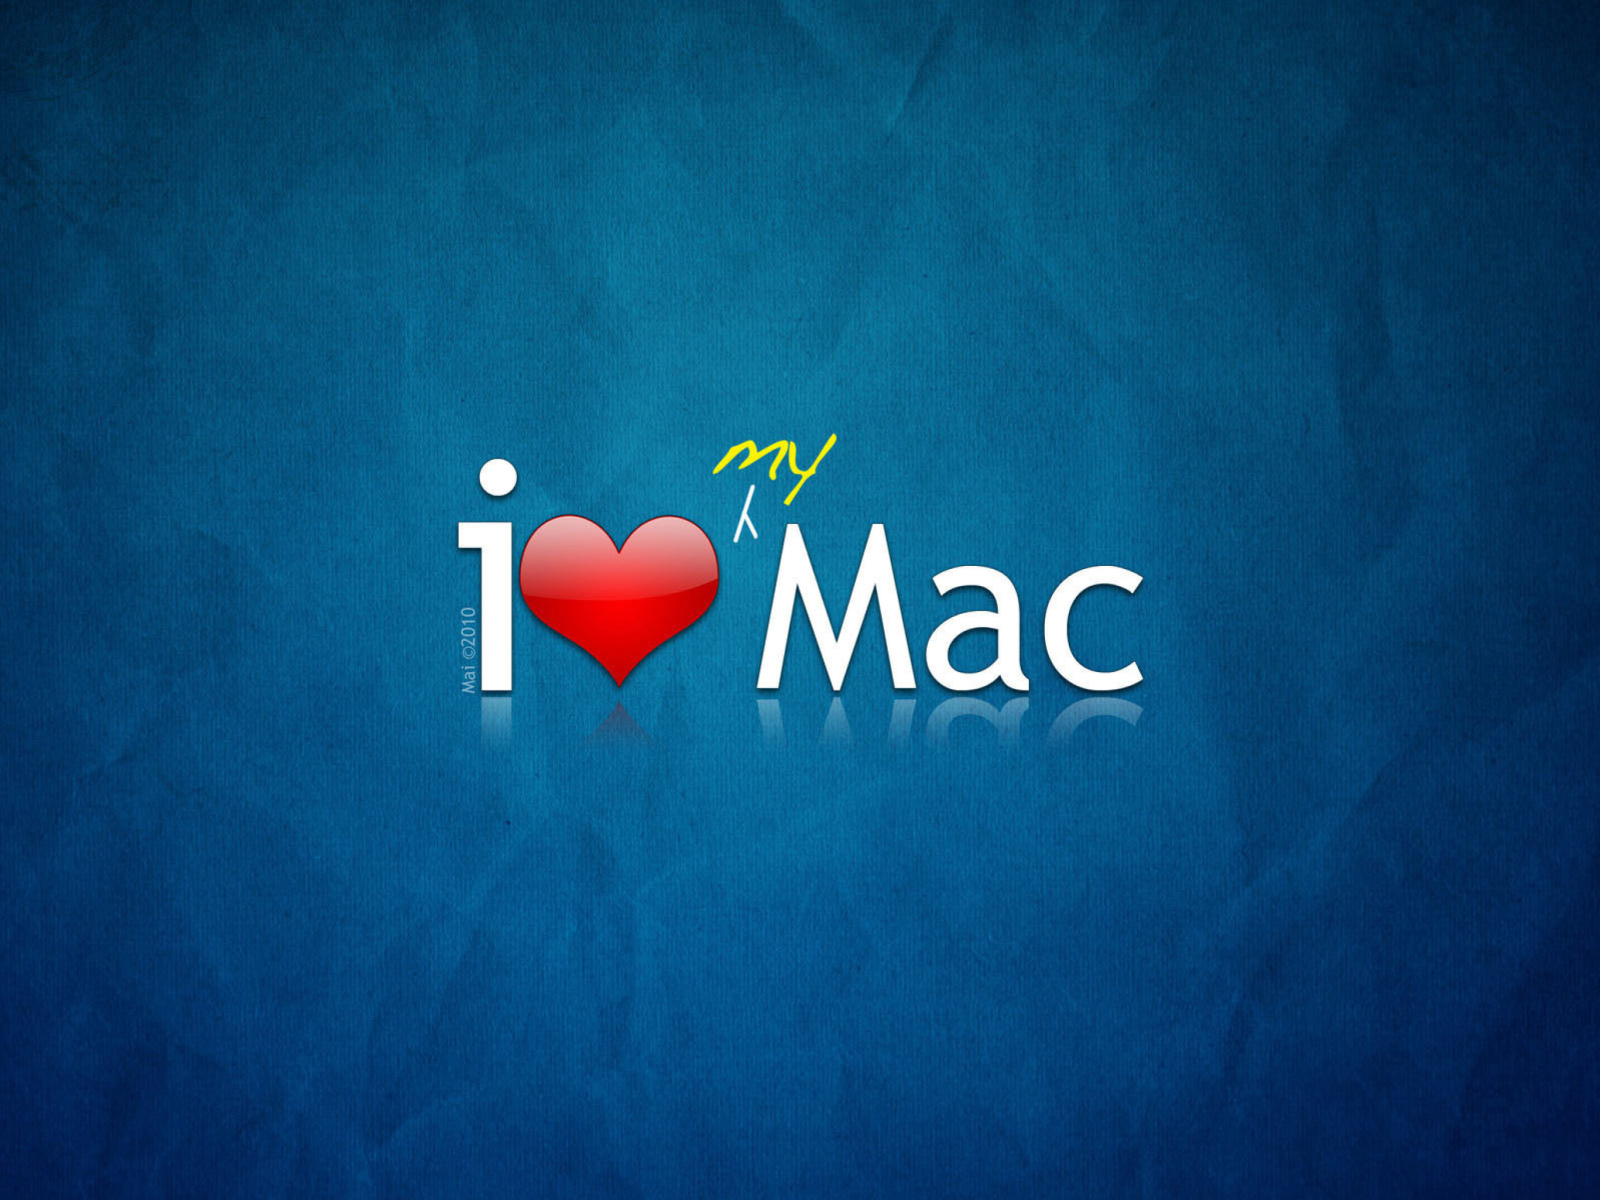 Sfondi I love Mac 1600x1200